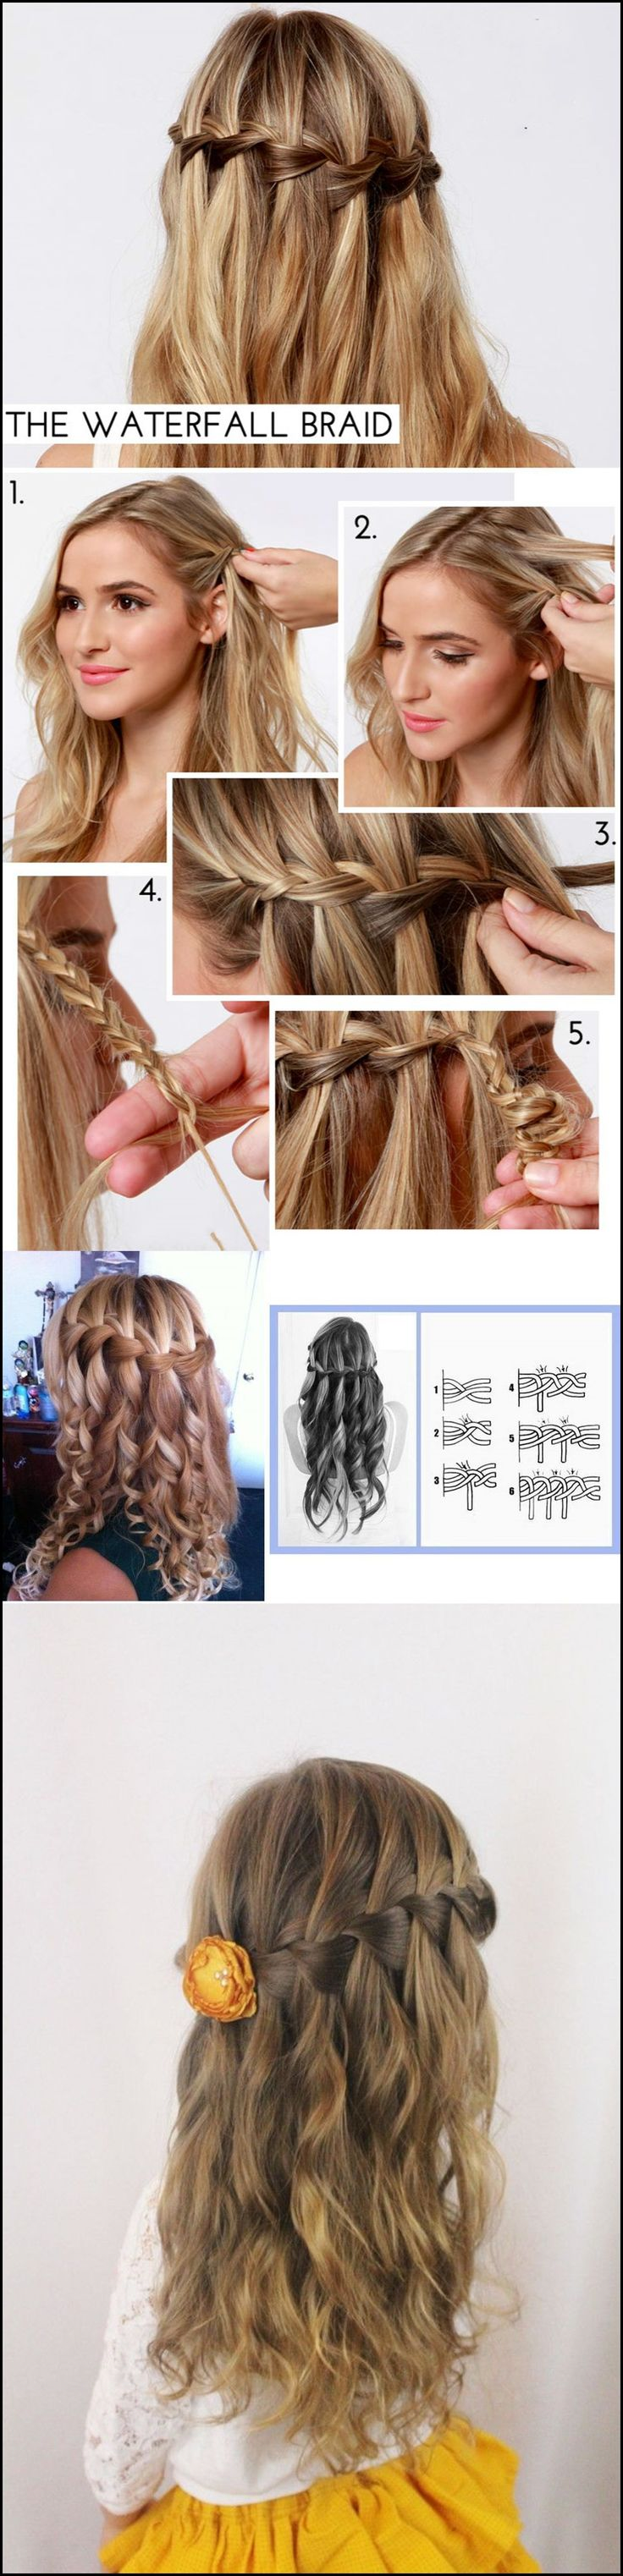 35 best Perfect Tresses images on Pinterest